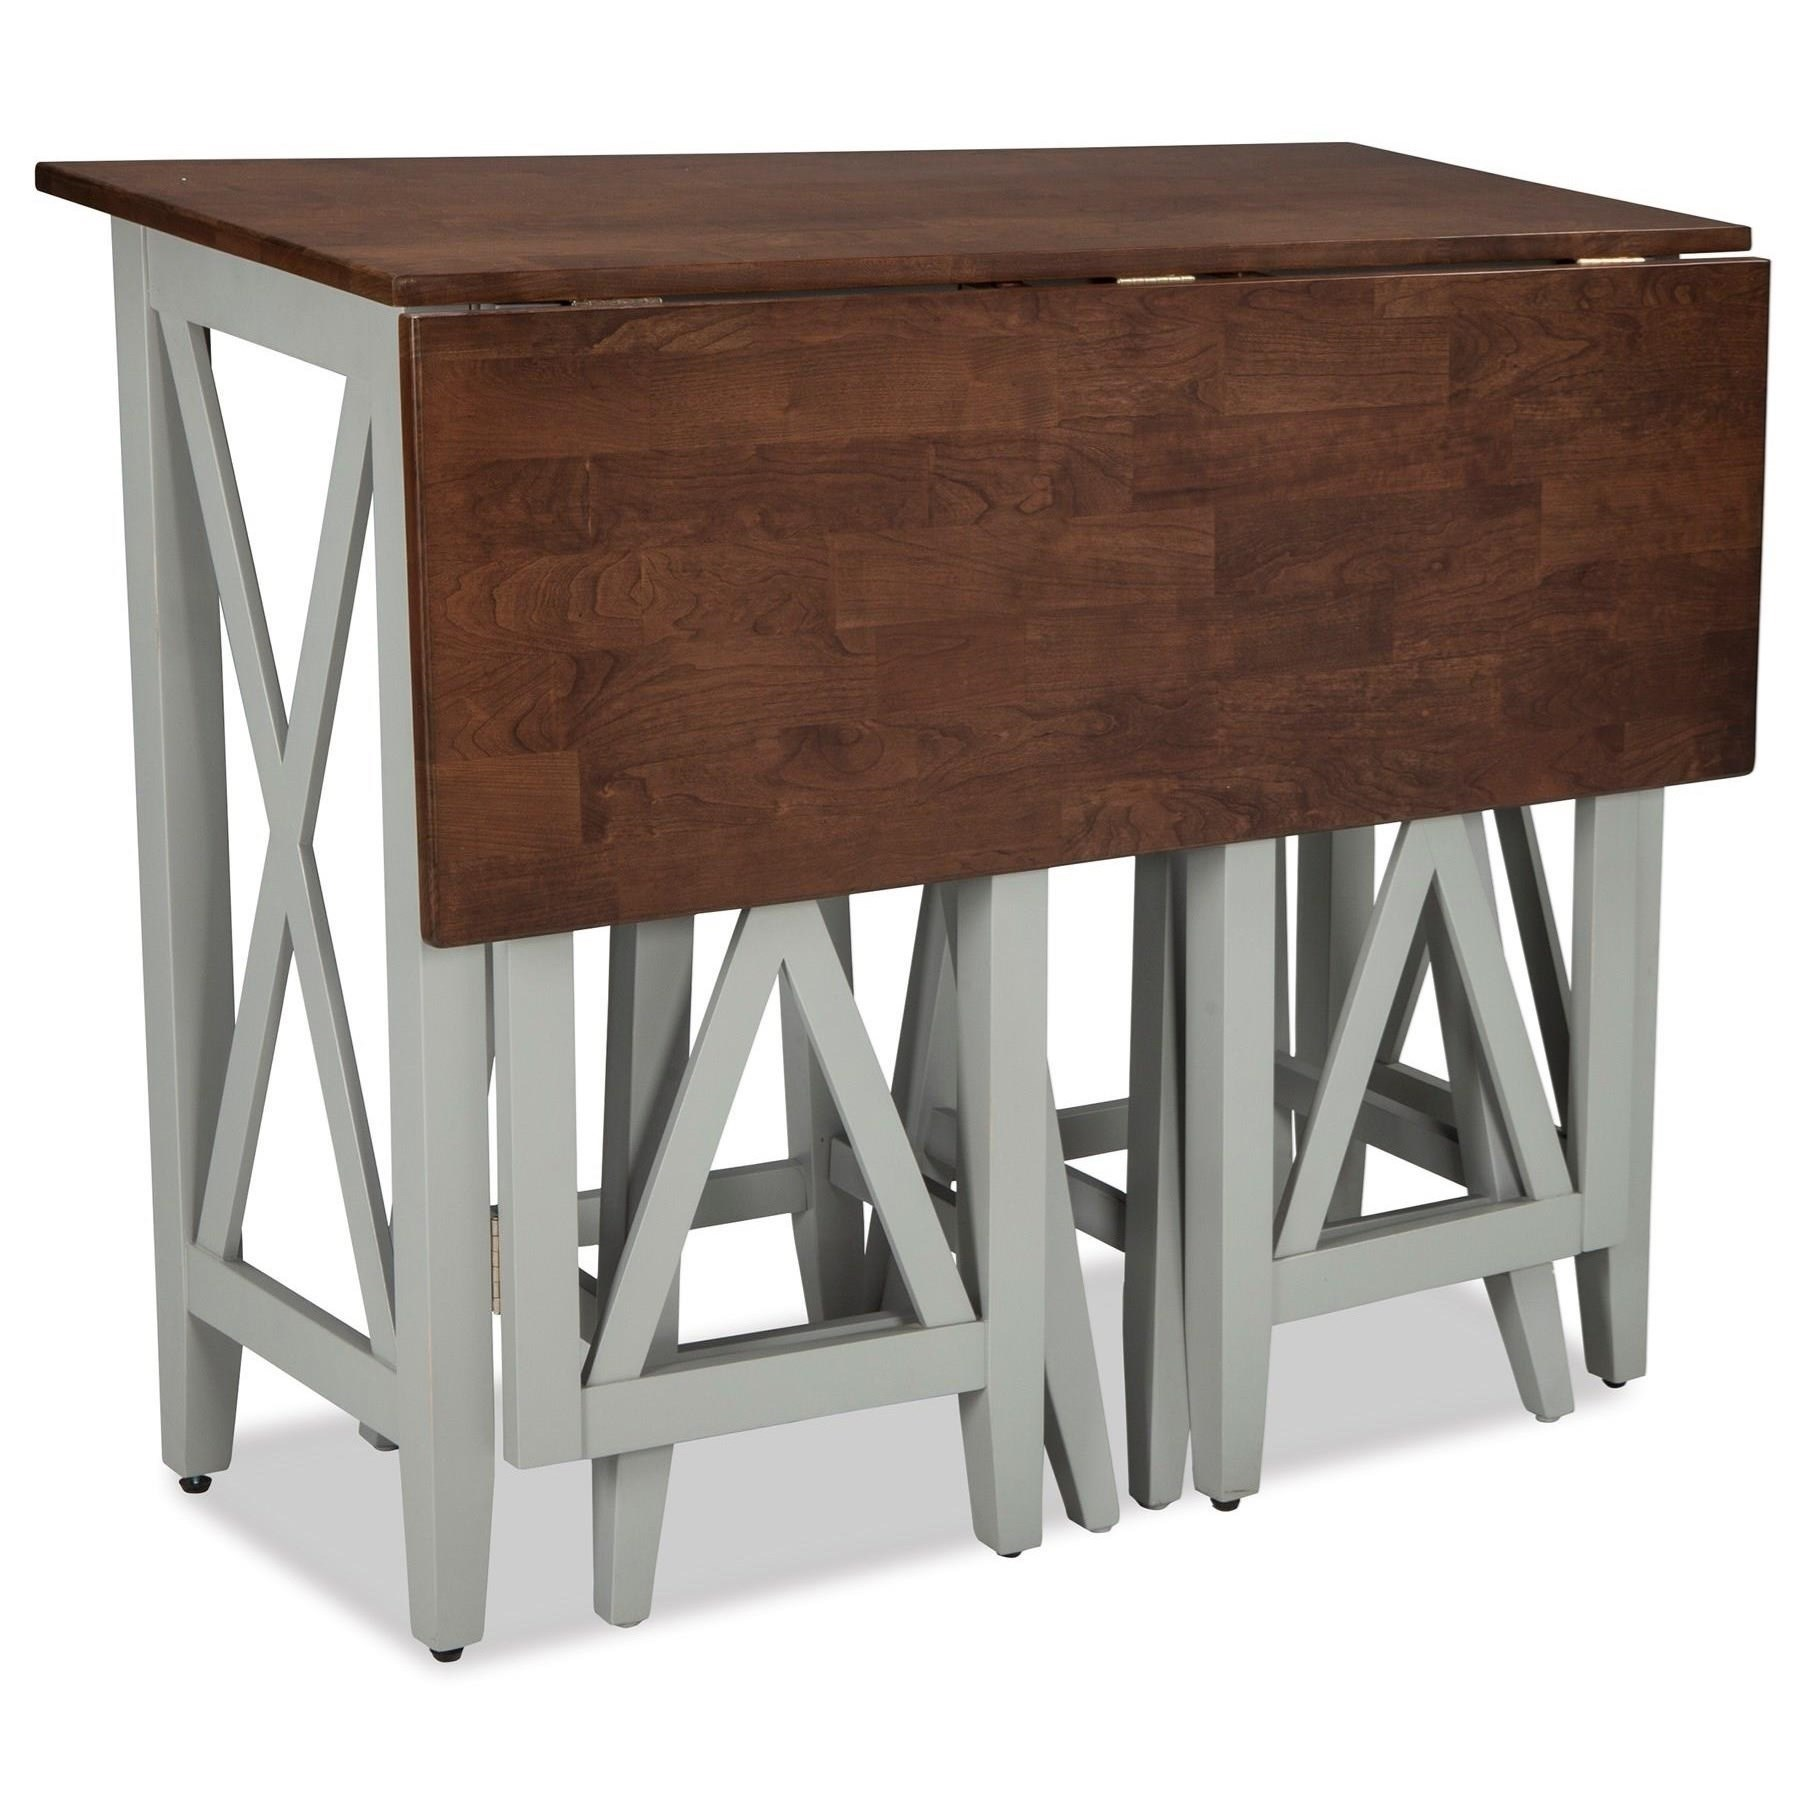 Modern Drop Leaf Tables Small Spaces Intercon Small Space Two Tone Drop Leaf Breakfast Bar